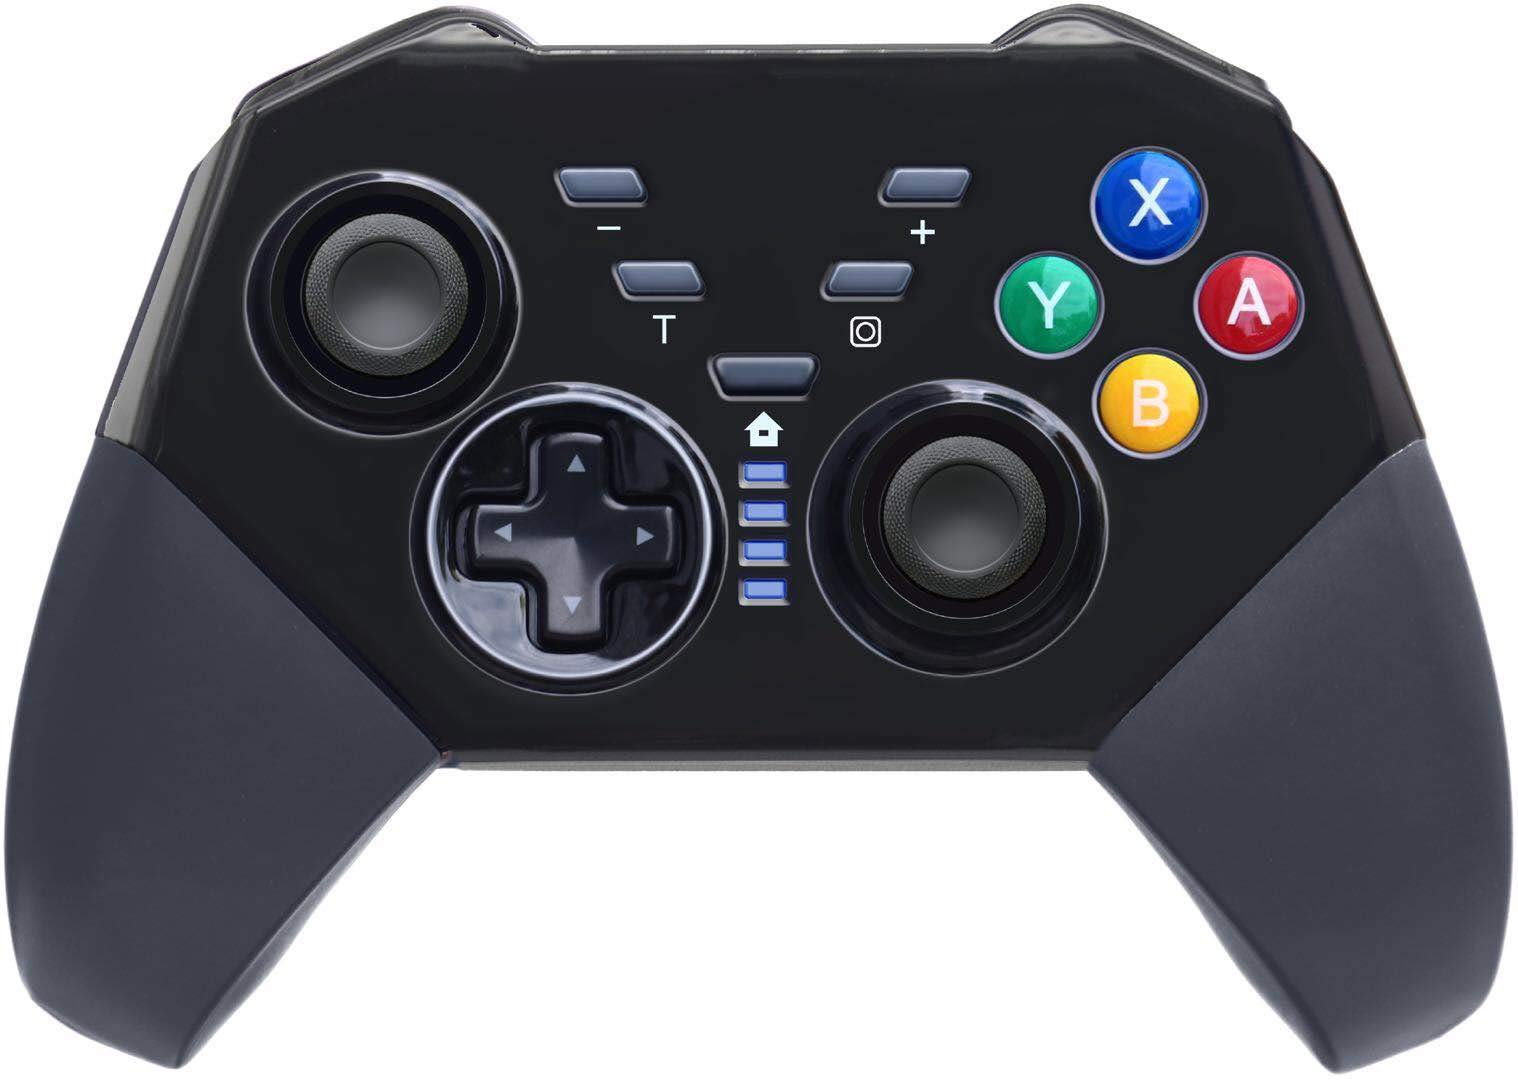 Wireless Pro Controller Compatible with Nintendo Switch Gyro Axis Dual Shock Gaming Gamepad Joypad, Black- PAWHITS